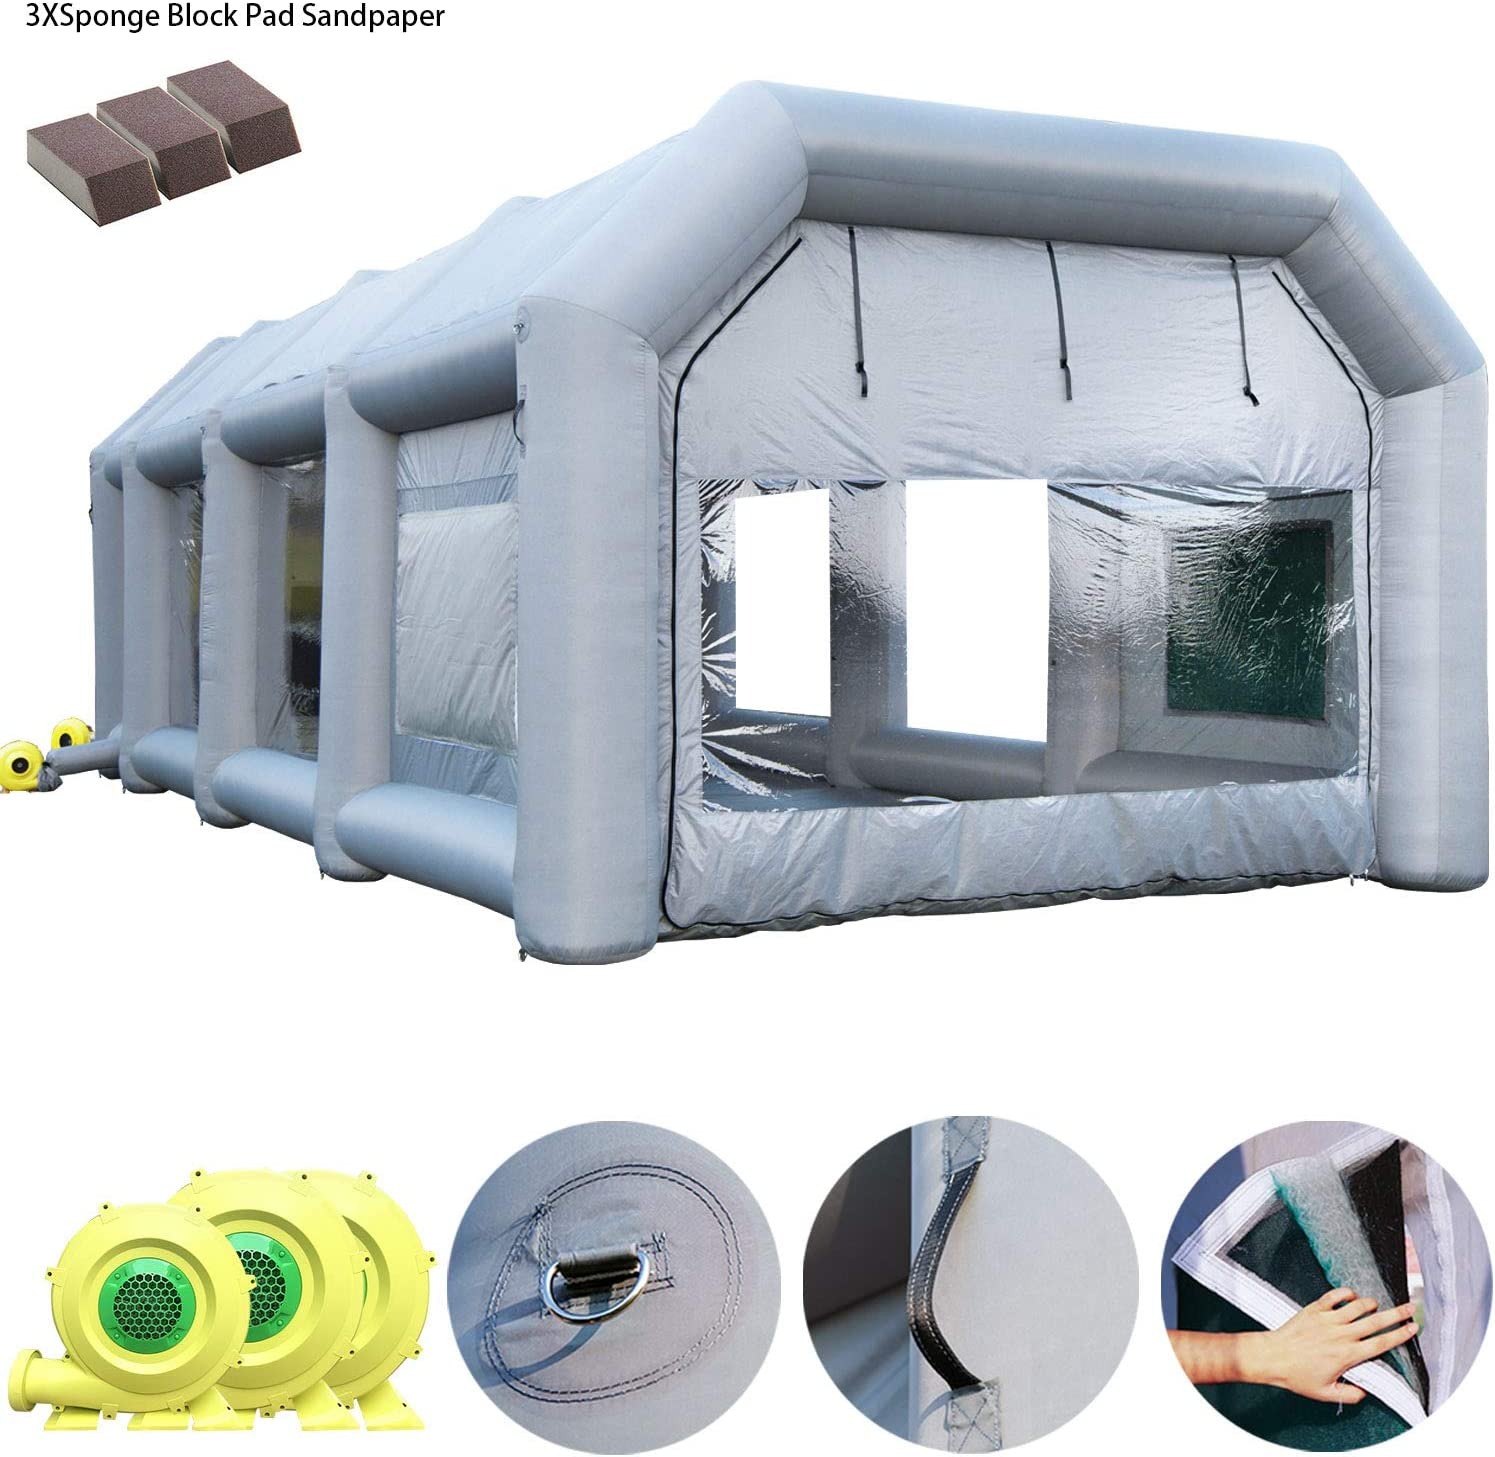 Gray, 33x16x11ft Inflatable Spray Booth Inflatable Car Paint Booth with Filtration System Mobile Car Parking Tent Workstation